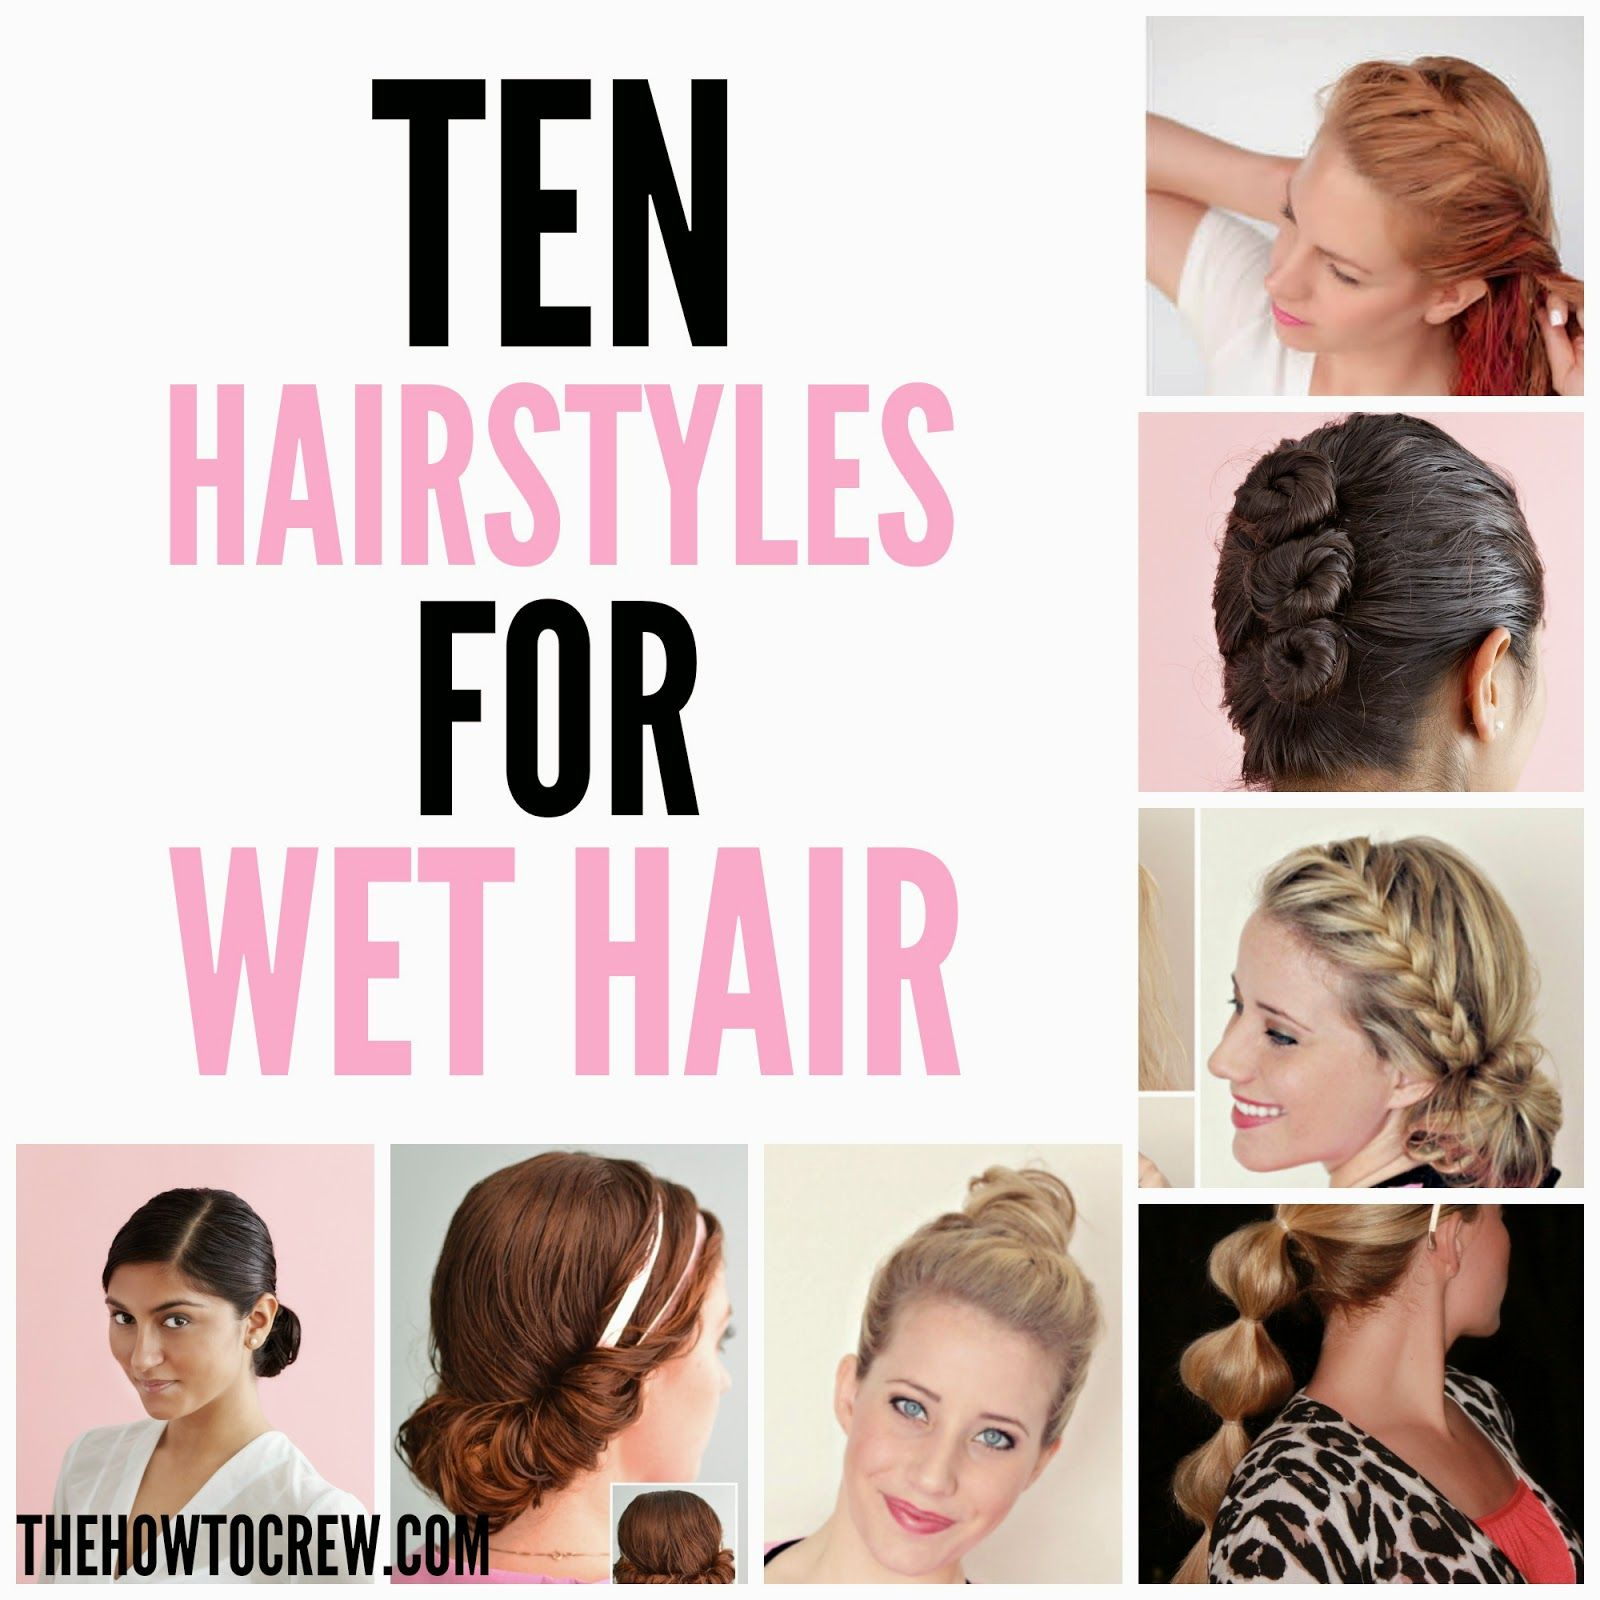 ten hairstyles for wet hair on thehowtocrew | hair